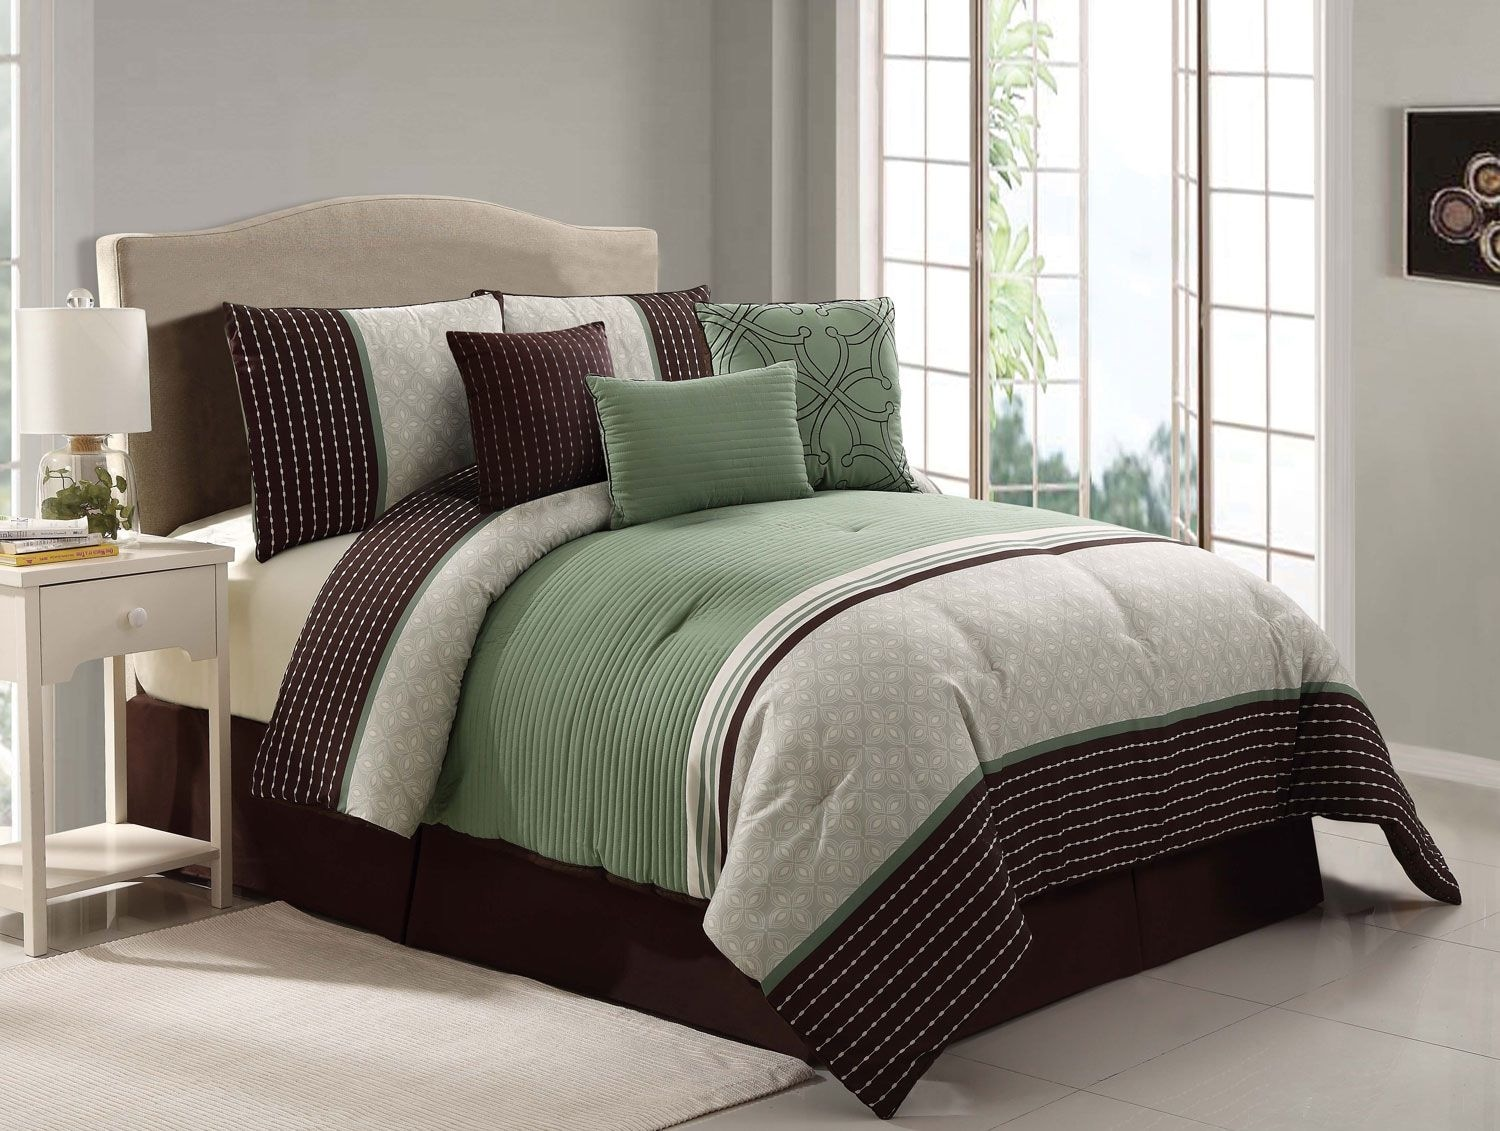 Seville 7-Piece King Comforter Set